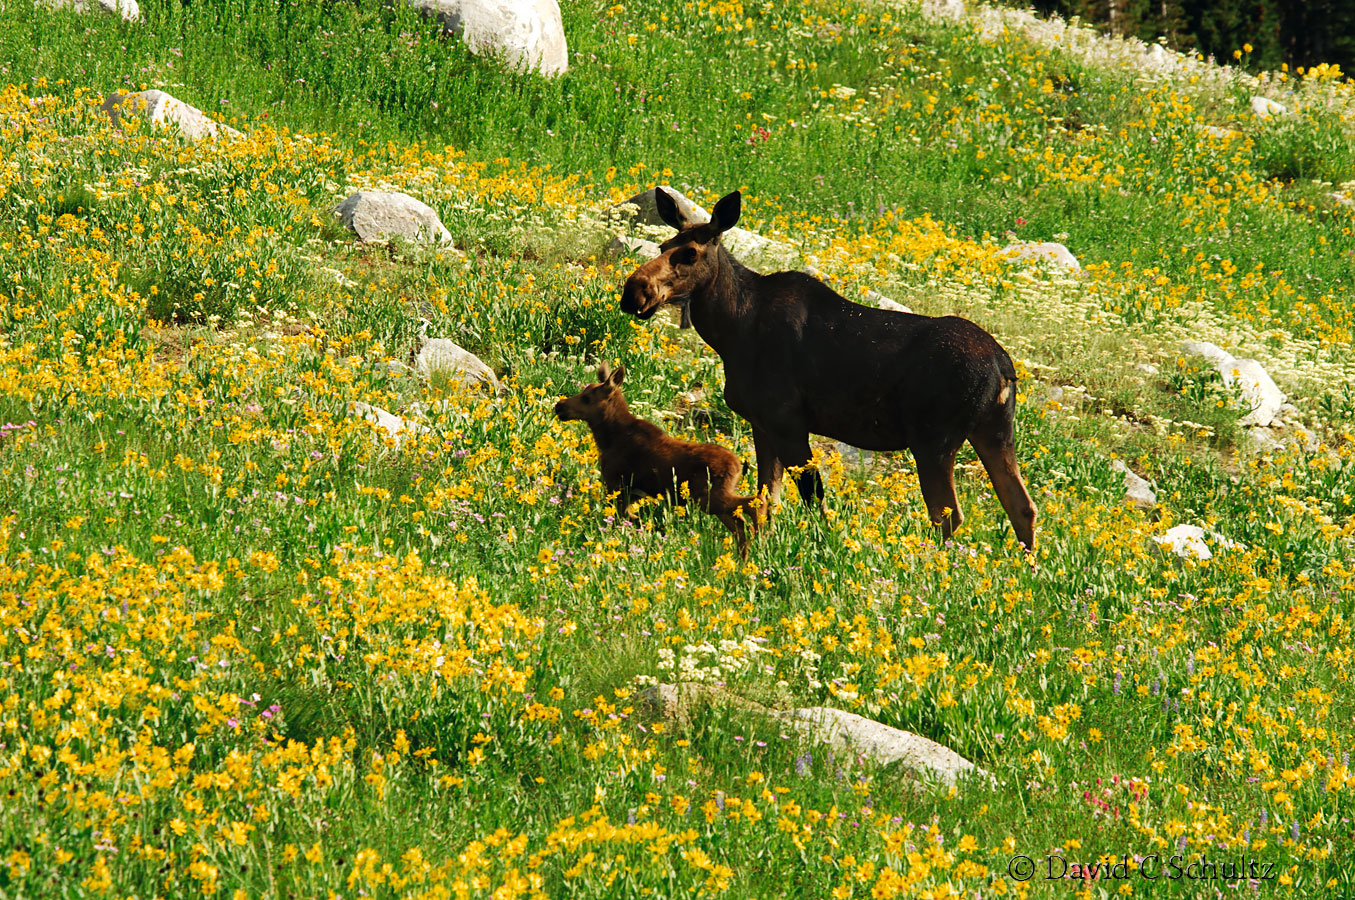 Moose in wildflowers, Alta, Utah - Image #161-182